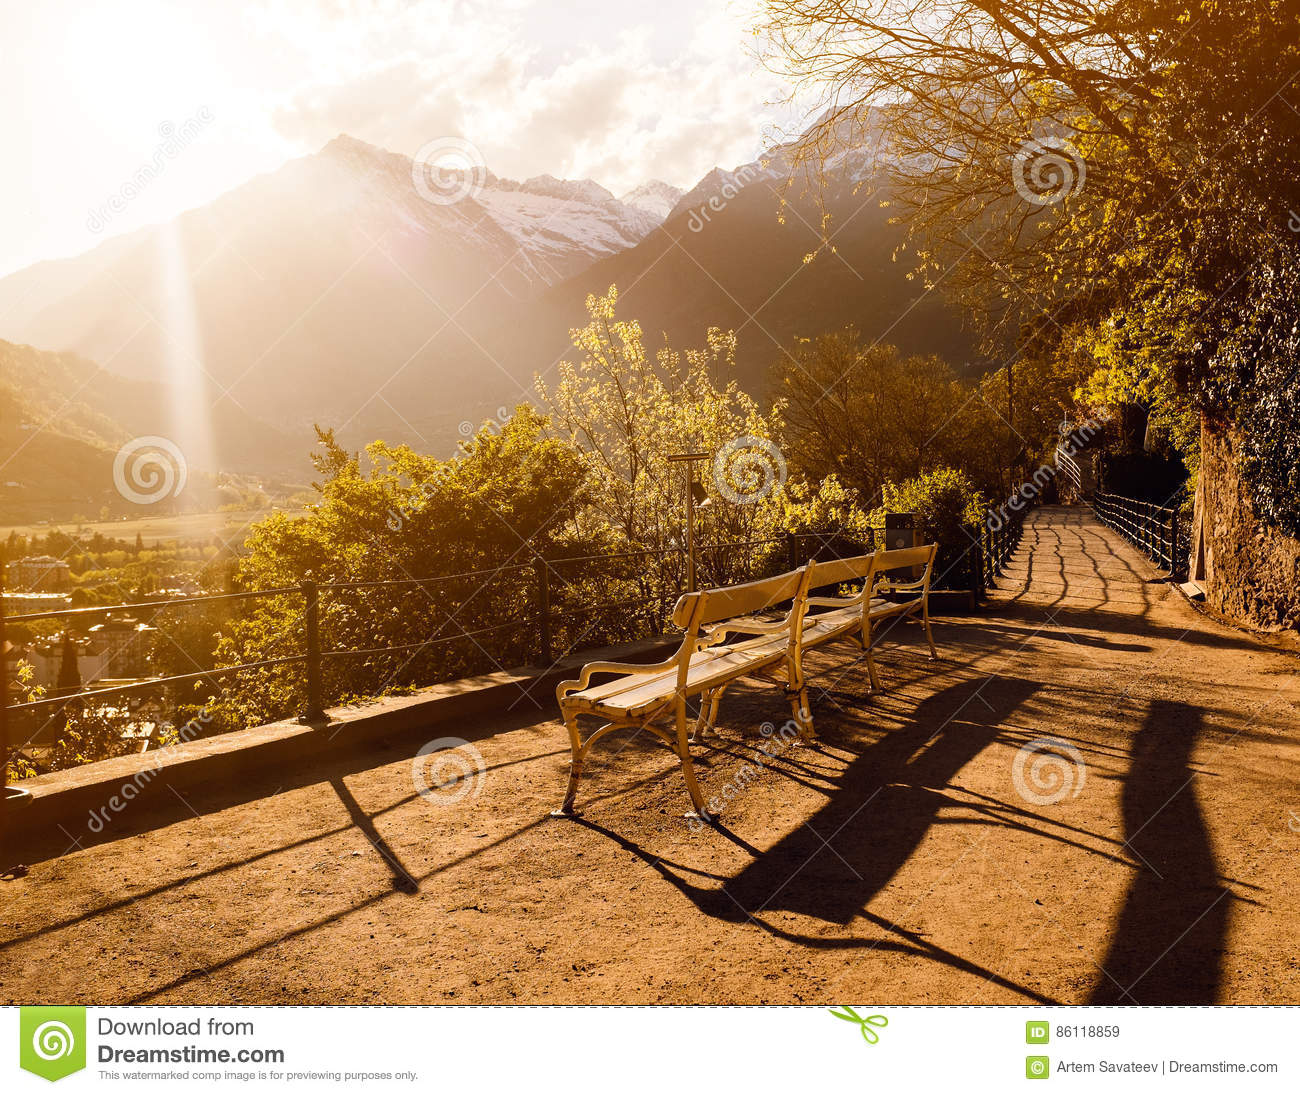 A bench in front of the hills during sunset